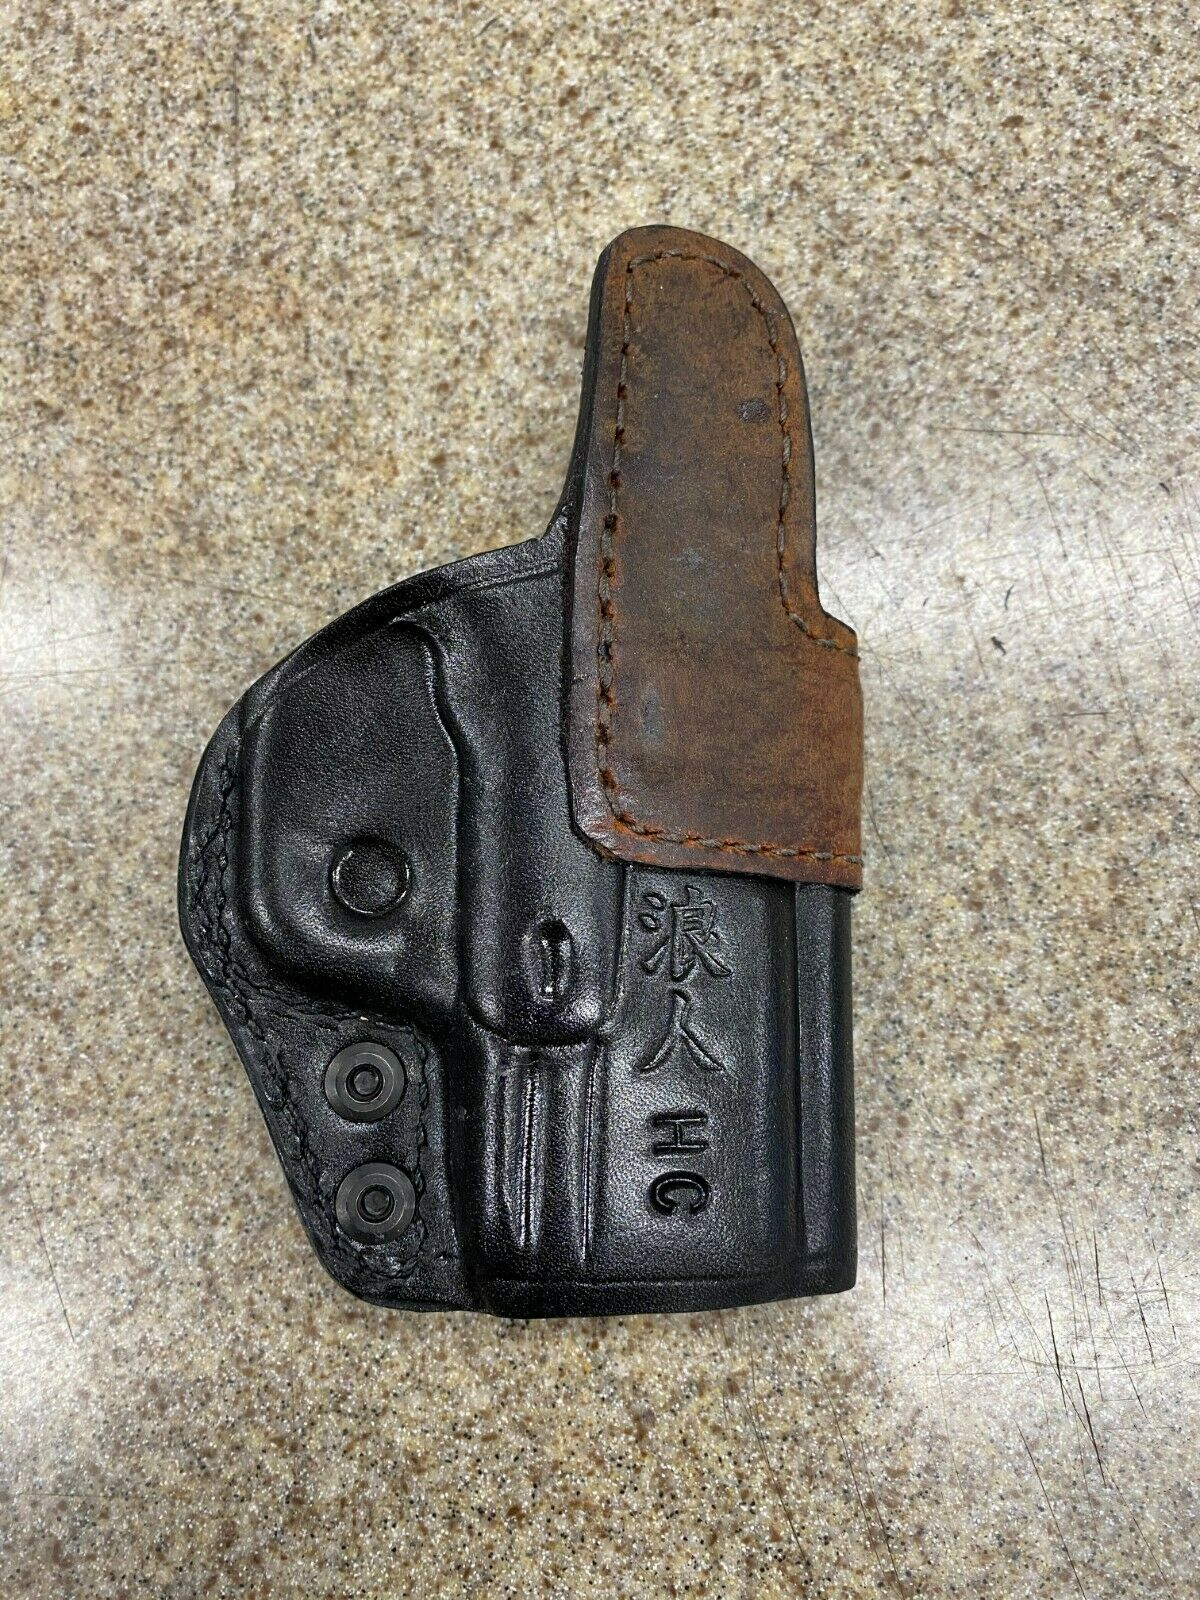 LEFT Hand Custom Leather Appendix Holster For A Springfield Hellcat - $35.00